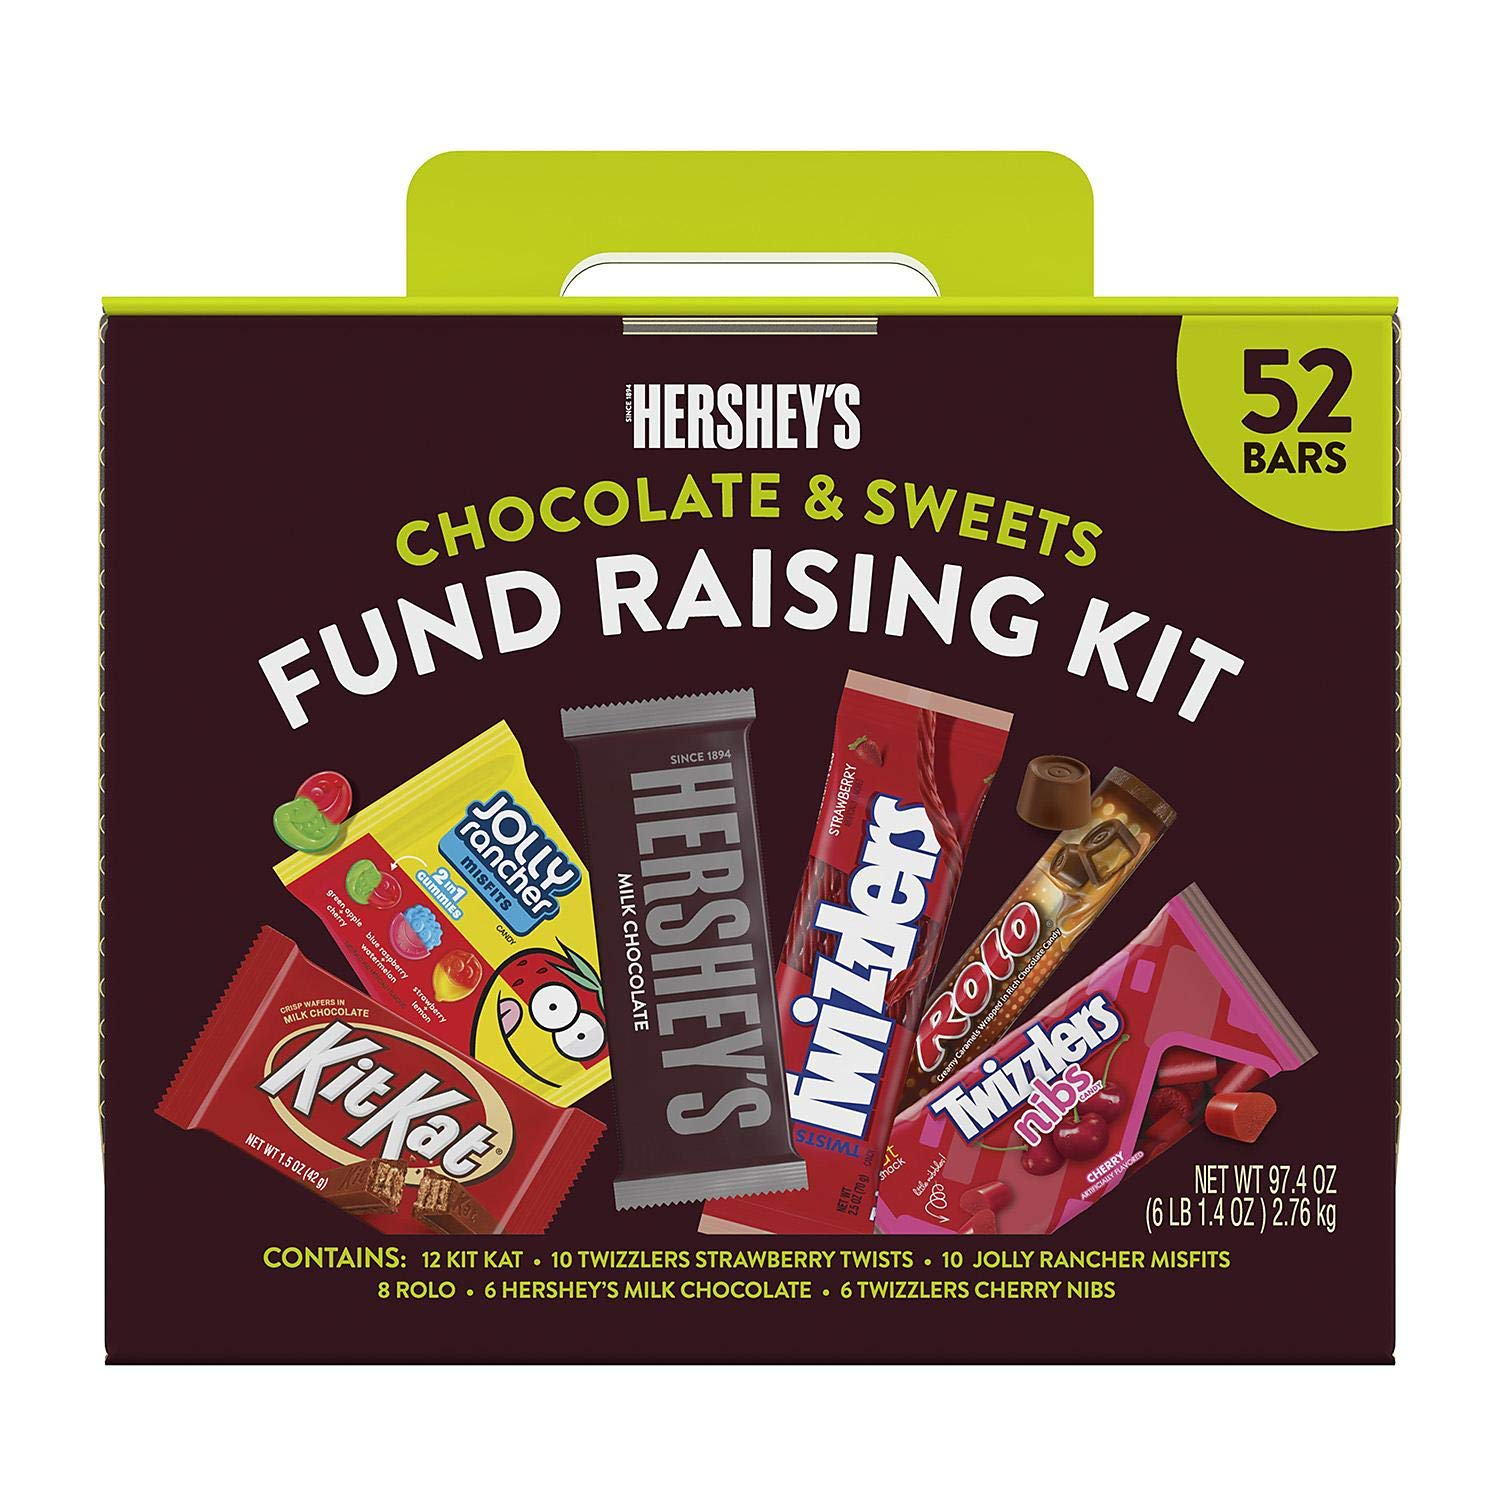 A variety pack of six Hershey's bars Chocolate and Sweets Fundraising Kit (Chocolate and Sweets Fundraising Kit) by HERSHEY'S